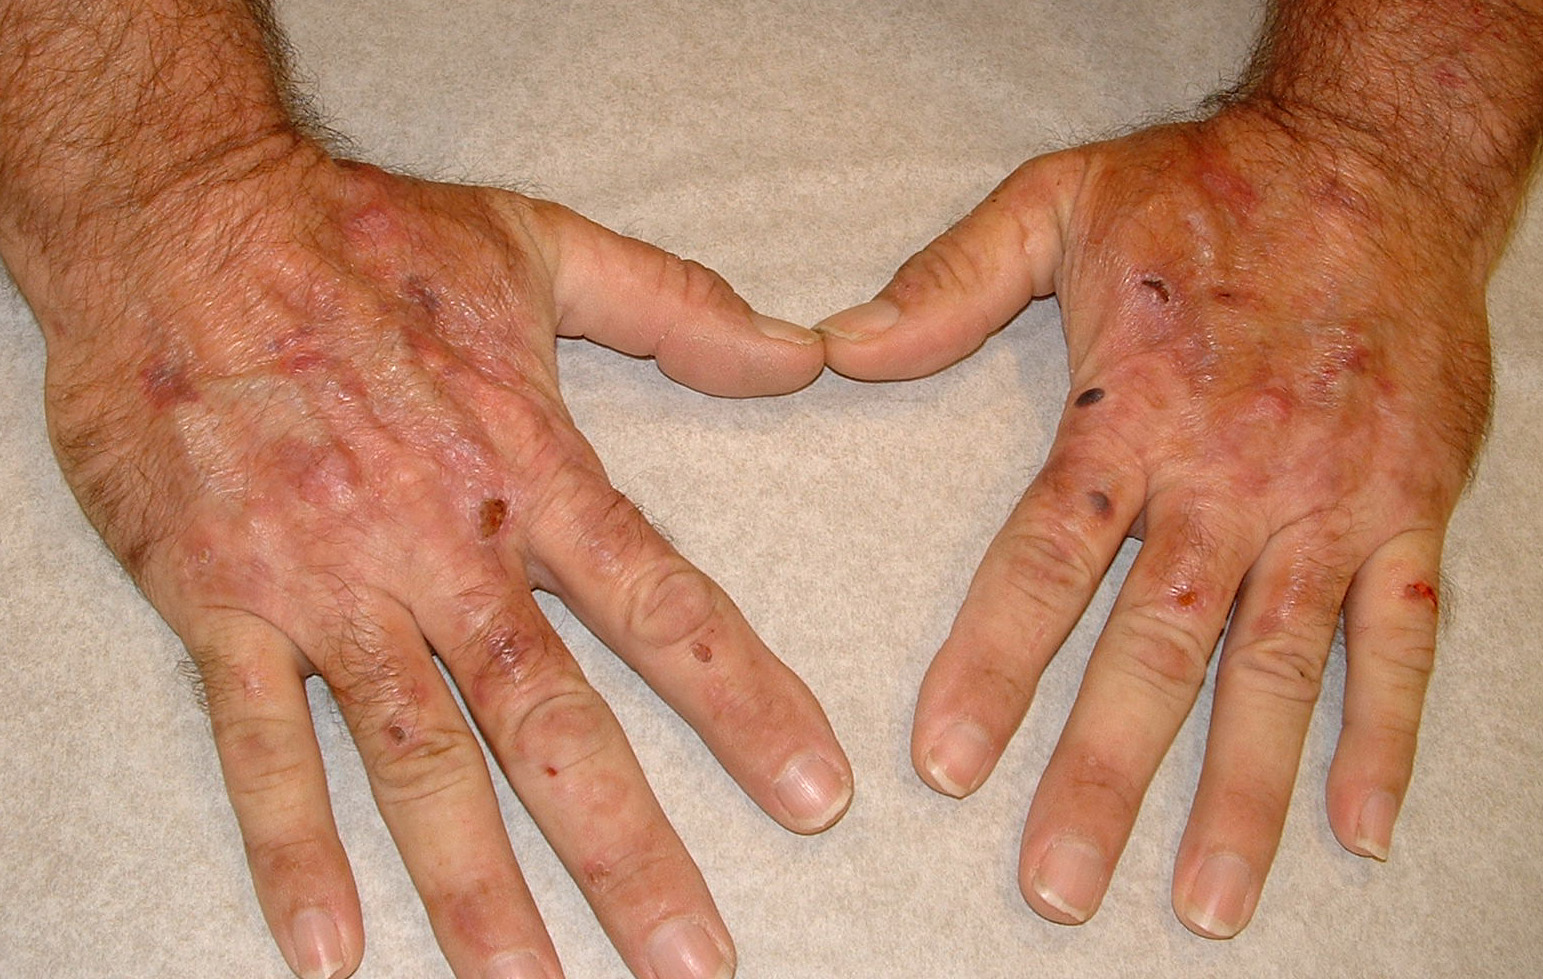 Hand-Foot-and-Mouth Disease on Hand 2 Picture Image on ...